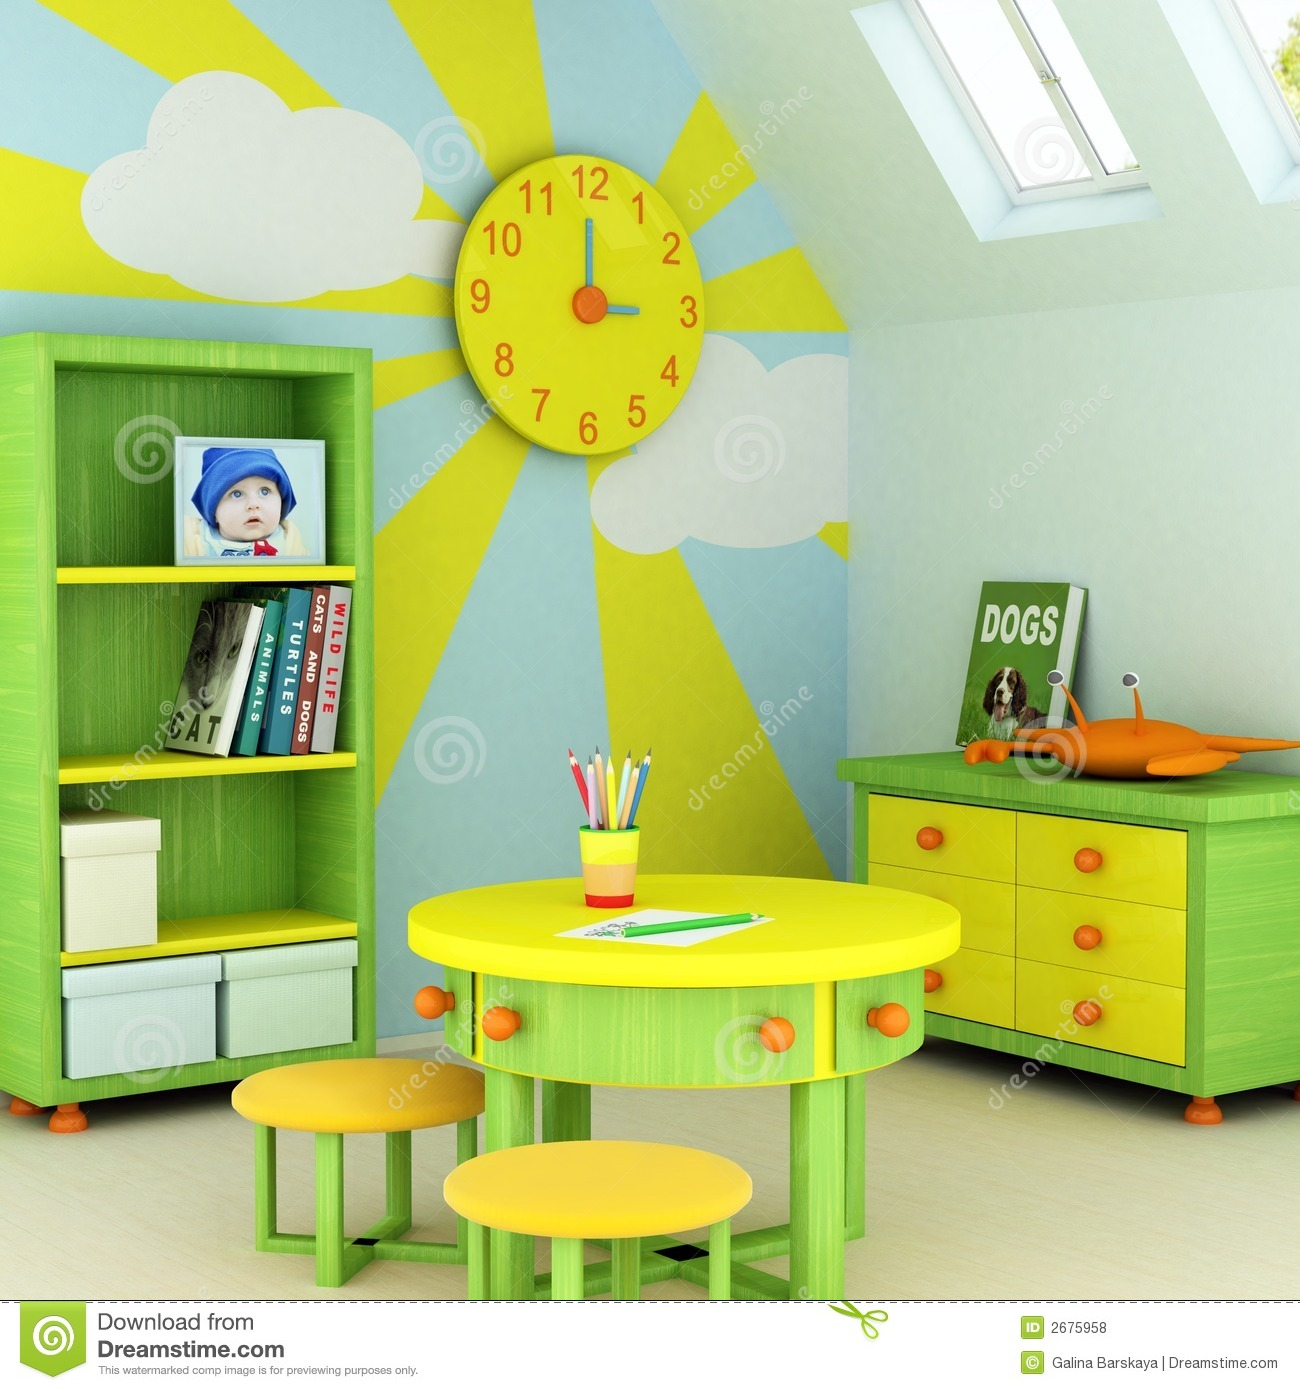 child room royalty free stock photos - image: 2675958